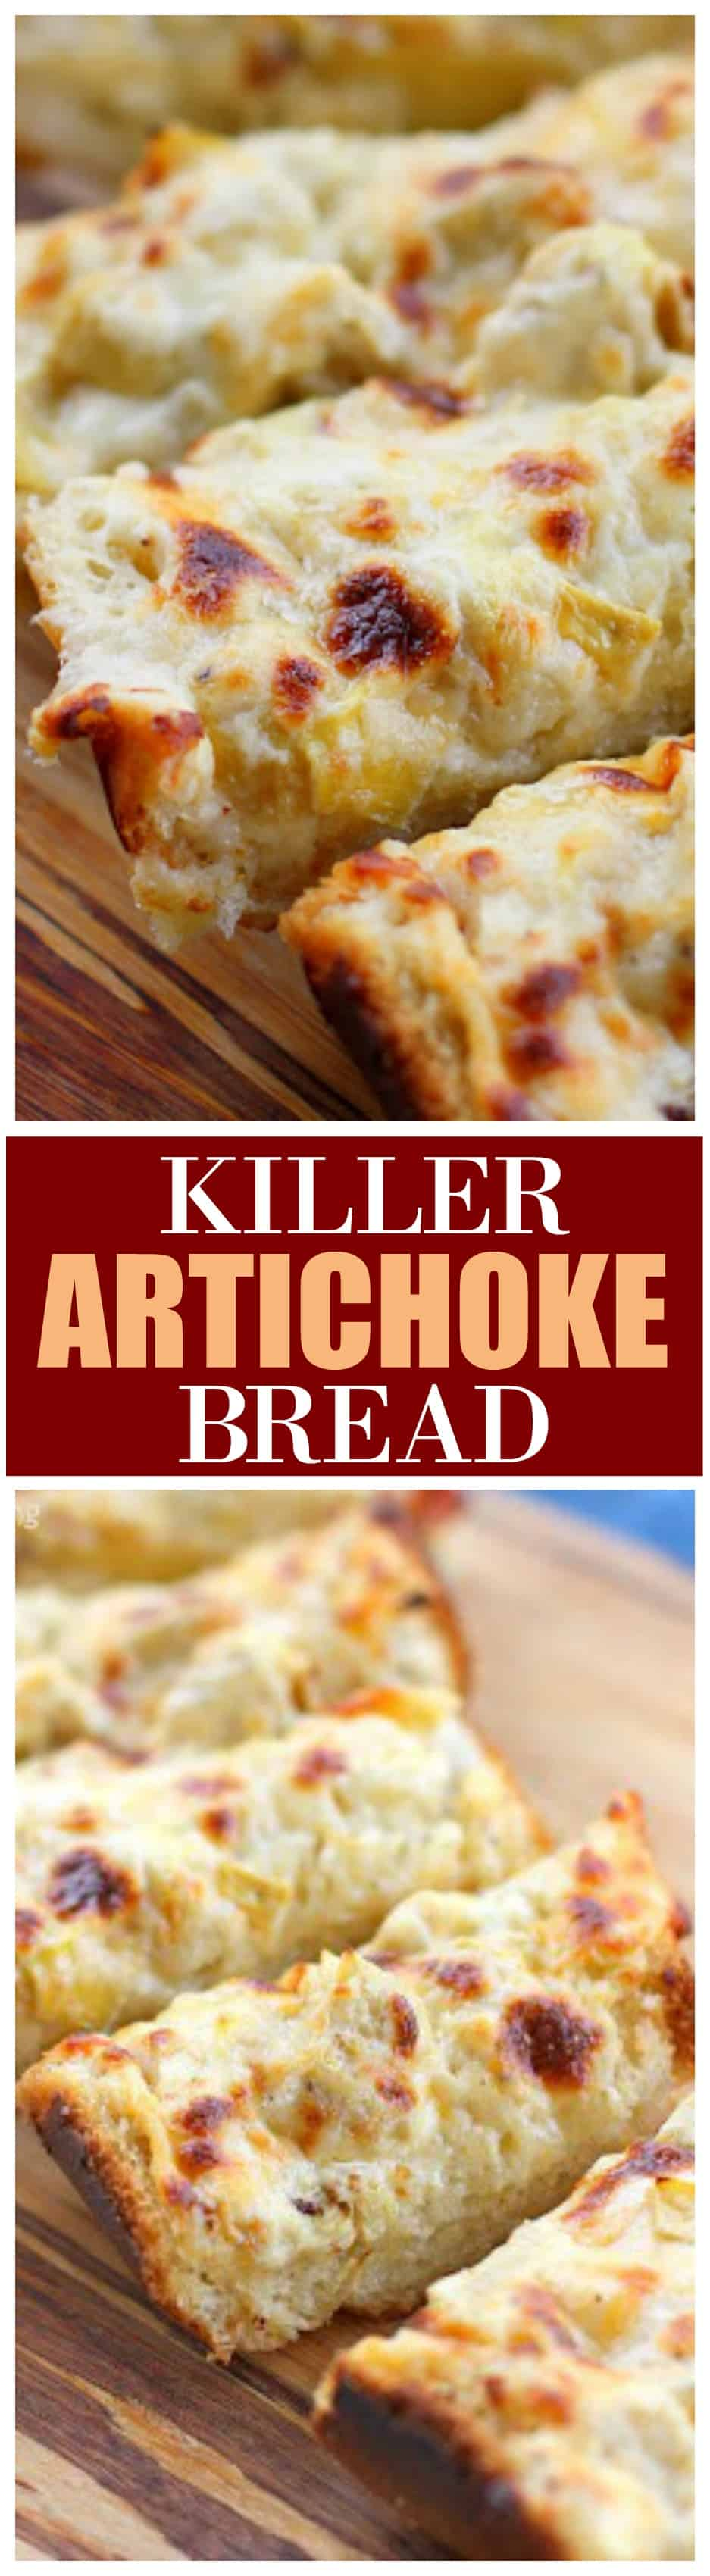 This Killer Artichoke Bread is artichoke dip in bread form